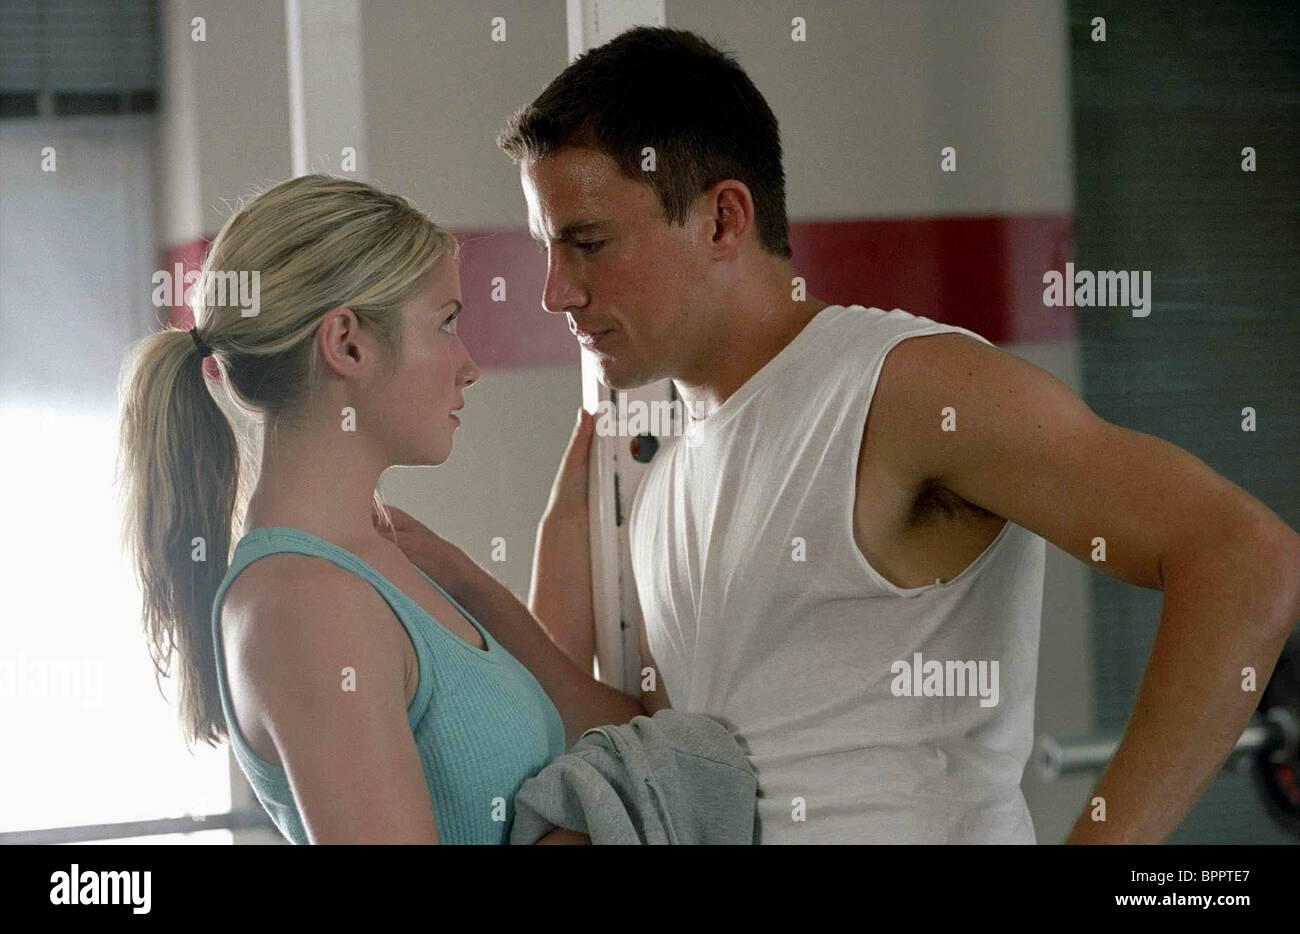 62d5123149a LAURA RAMSEY   CHANNING TATUM SHE S THE MAN (2006 Stock Photo ...